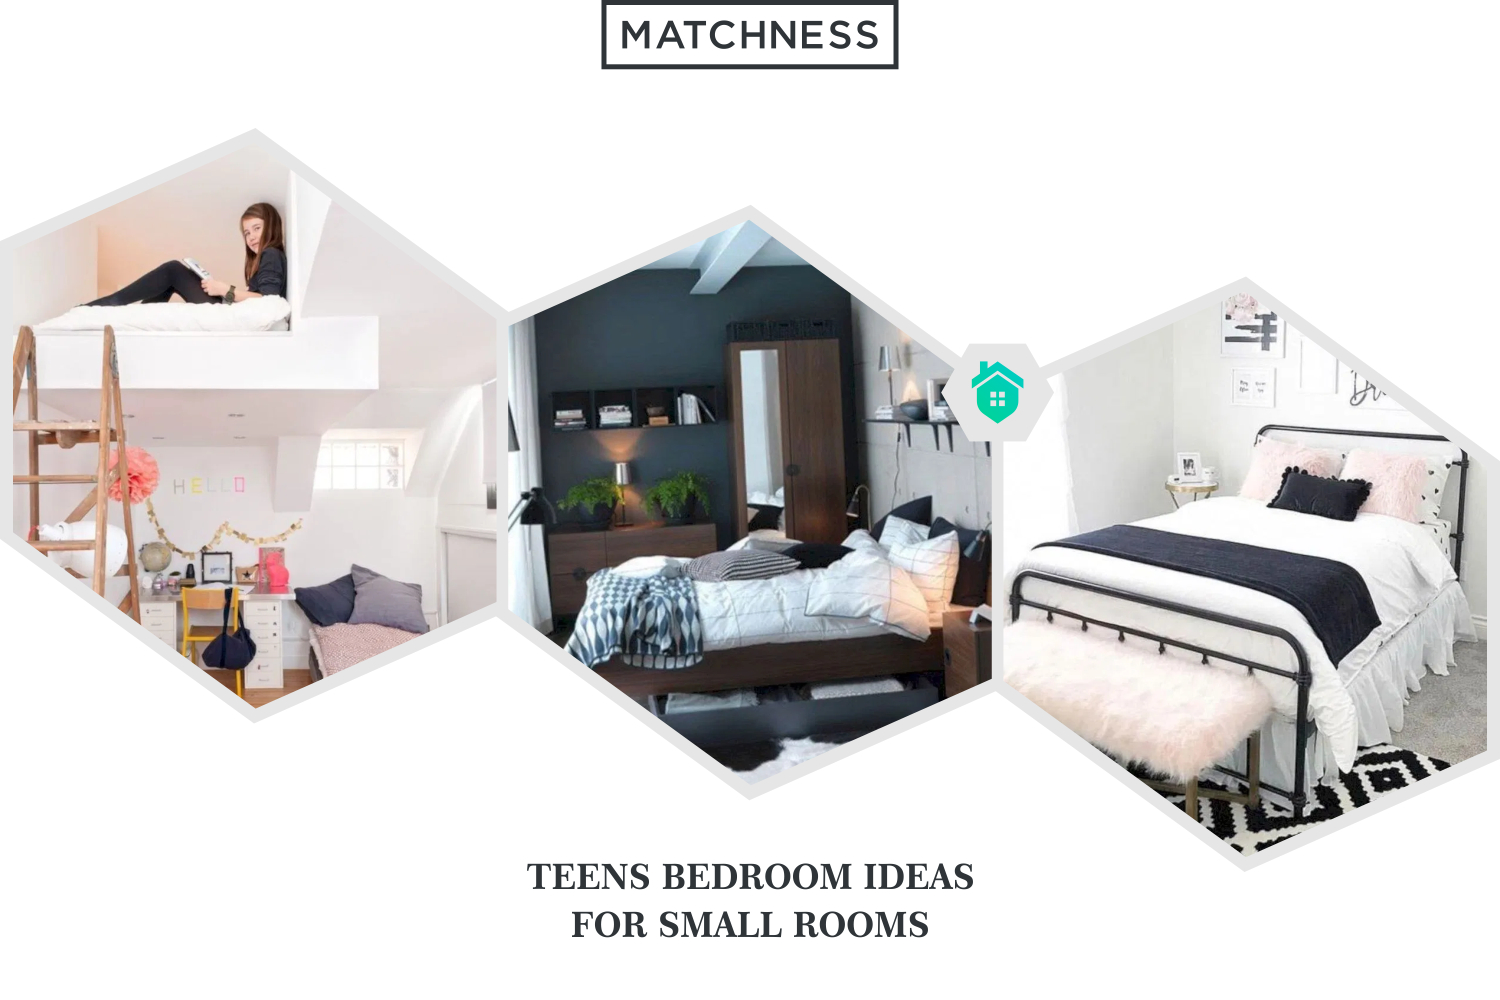 48 Teens Bedroom Ideas For Small Rooms Matchness Com